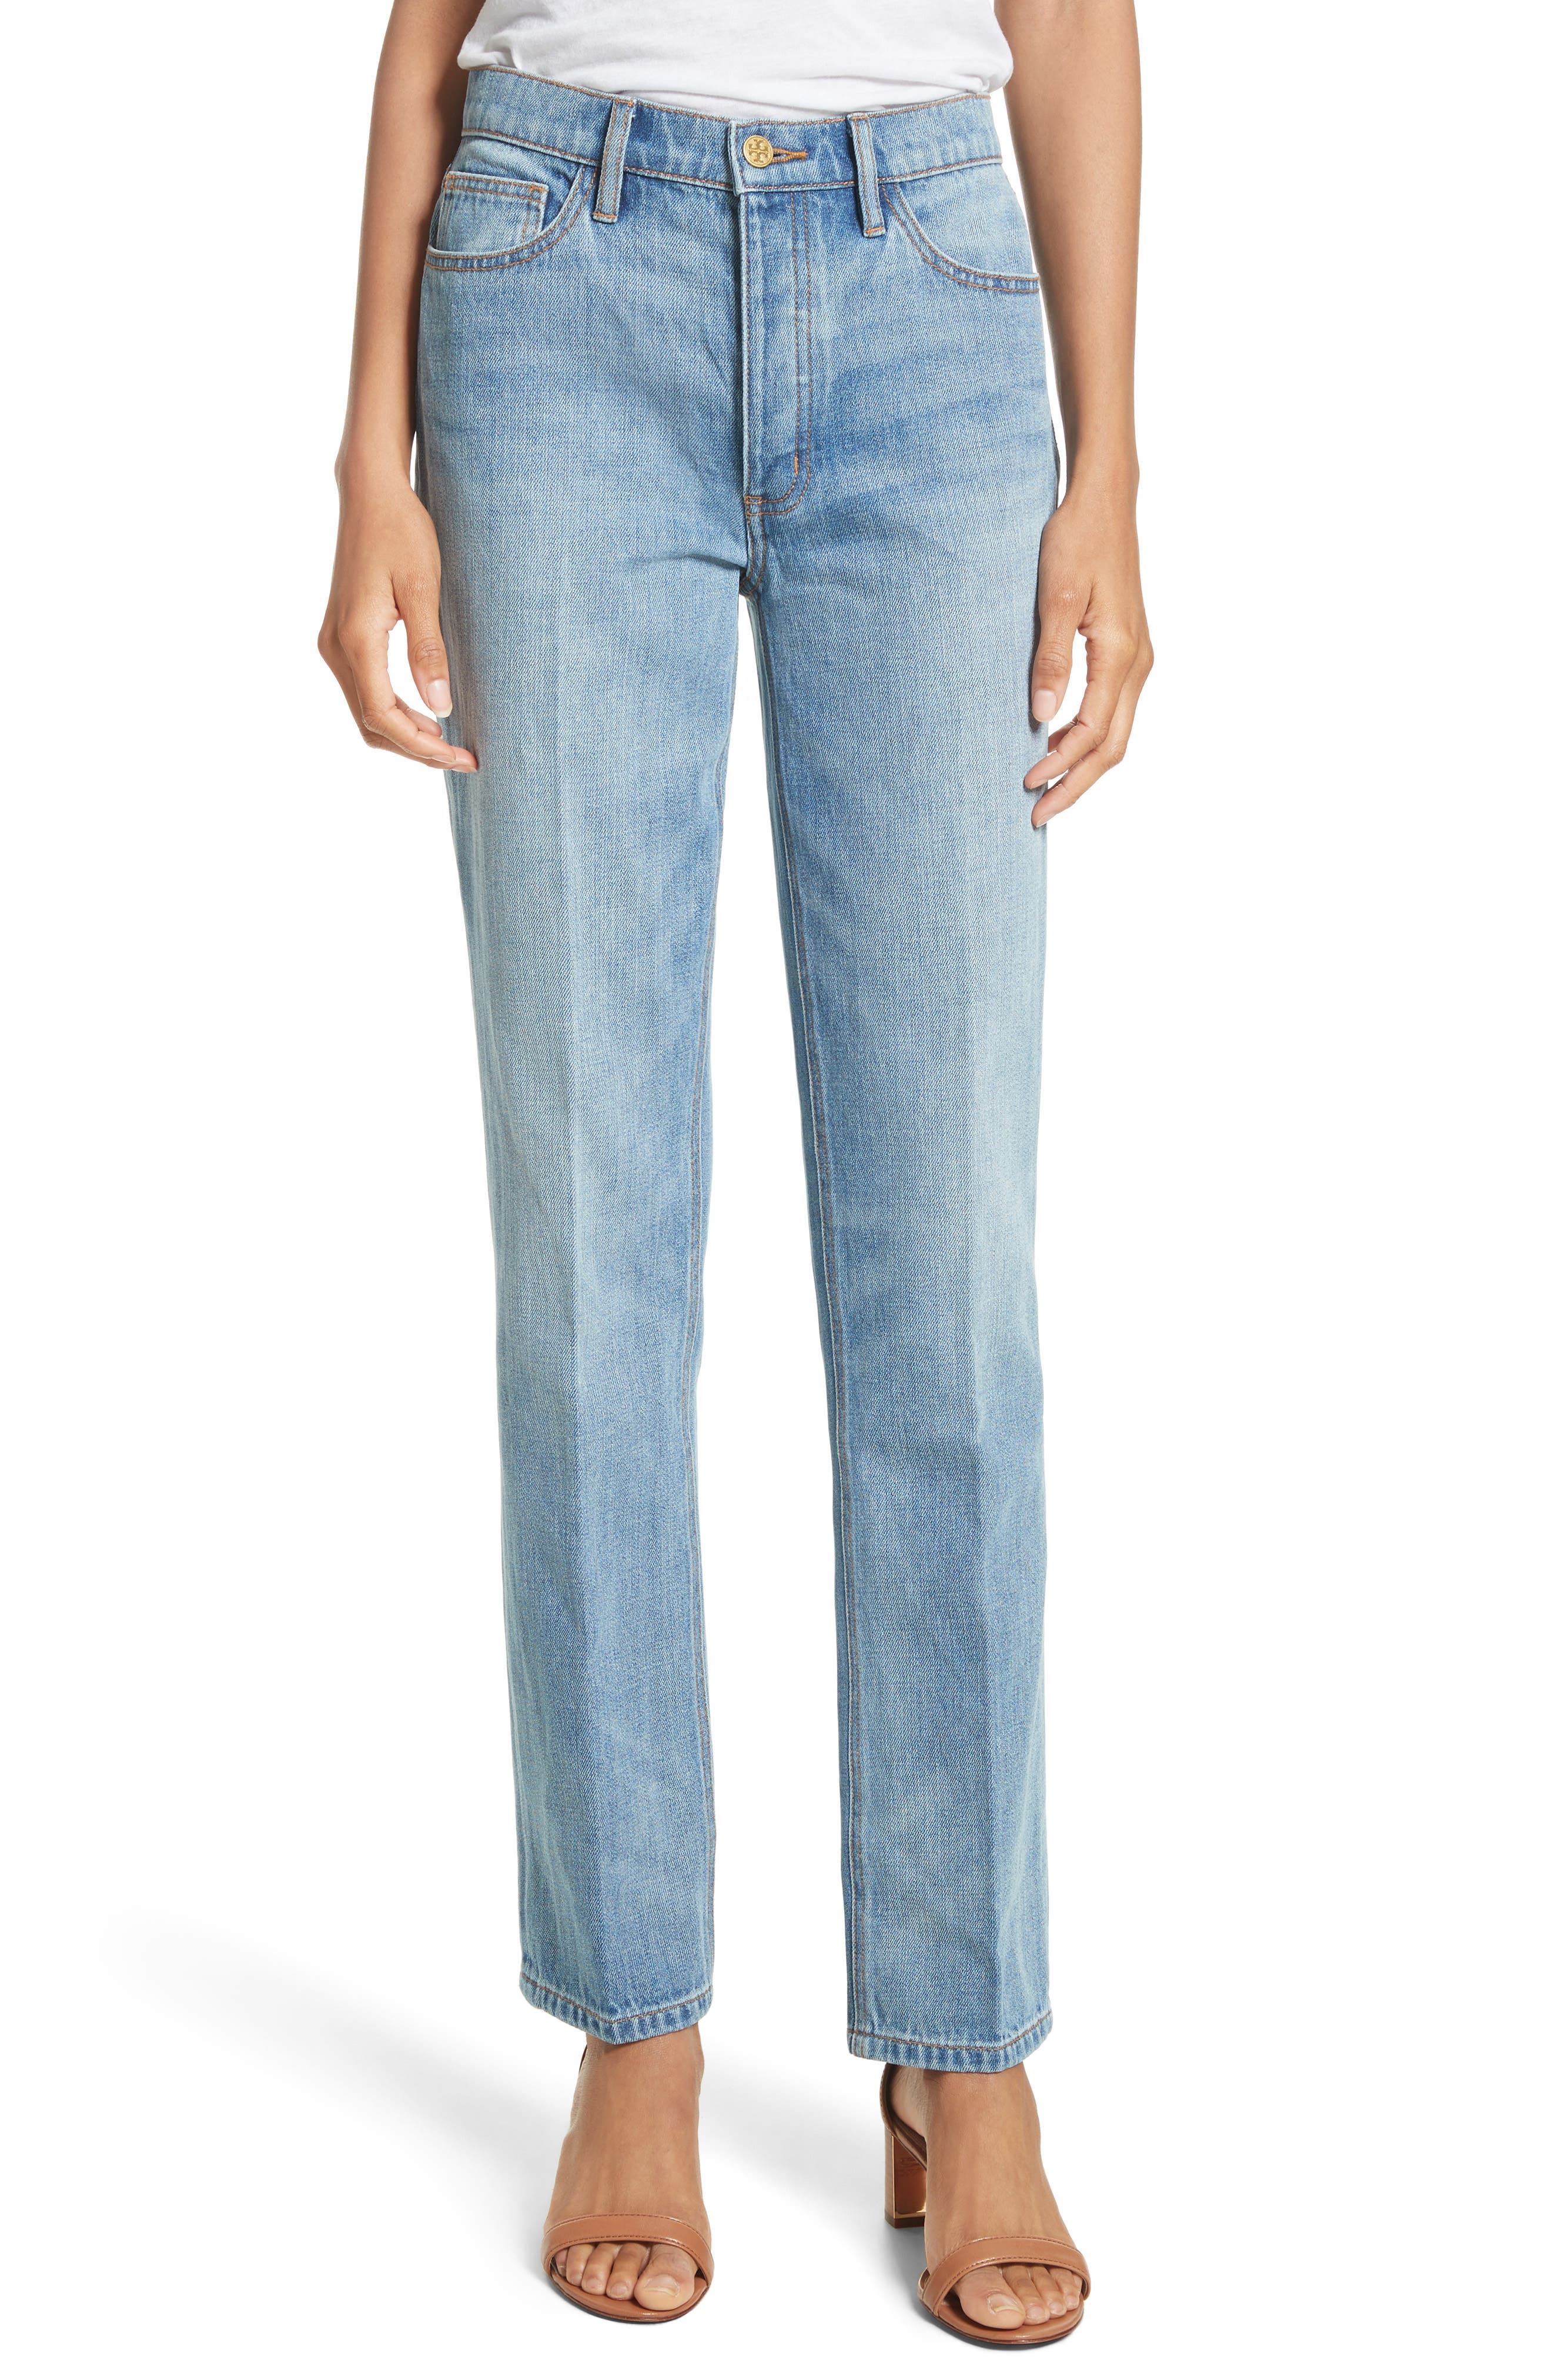 Main Image - Tory Burch Betsy Straight Leg Jeans (Dusk Blue)